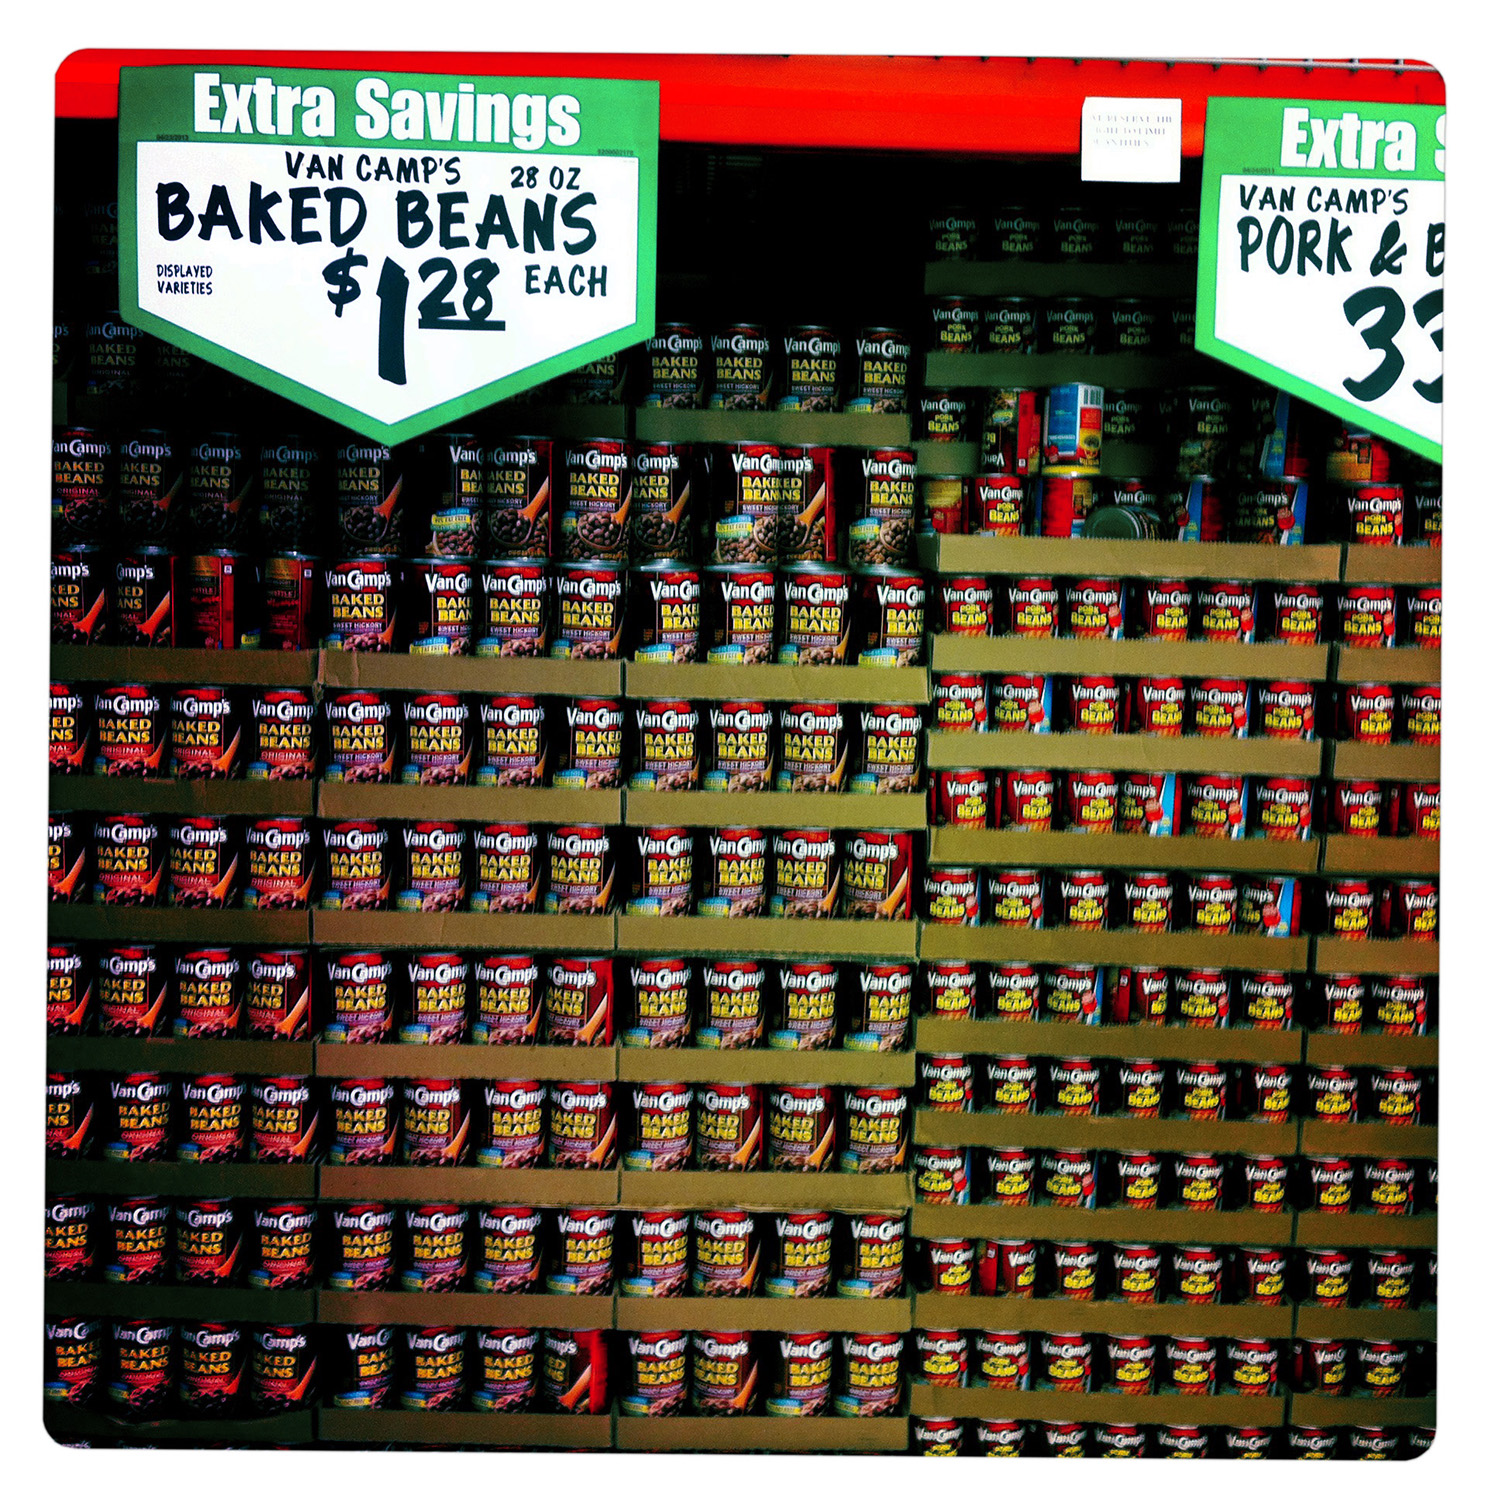 Baked Beans on Specialprice in Calexico CA California